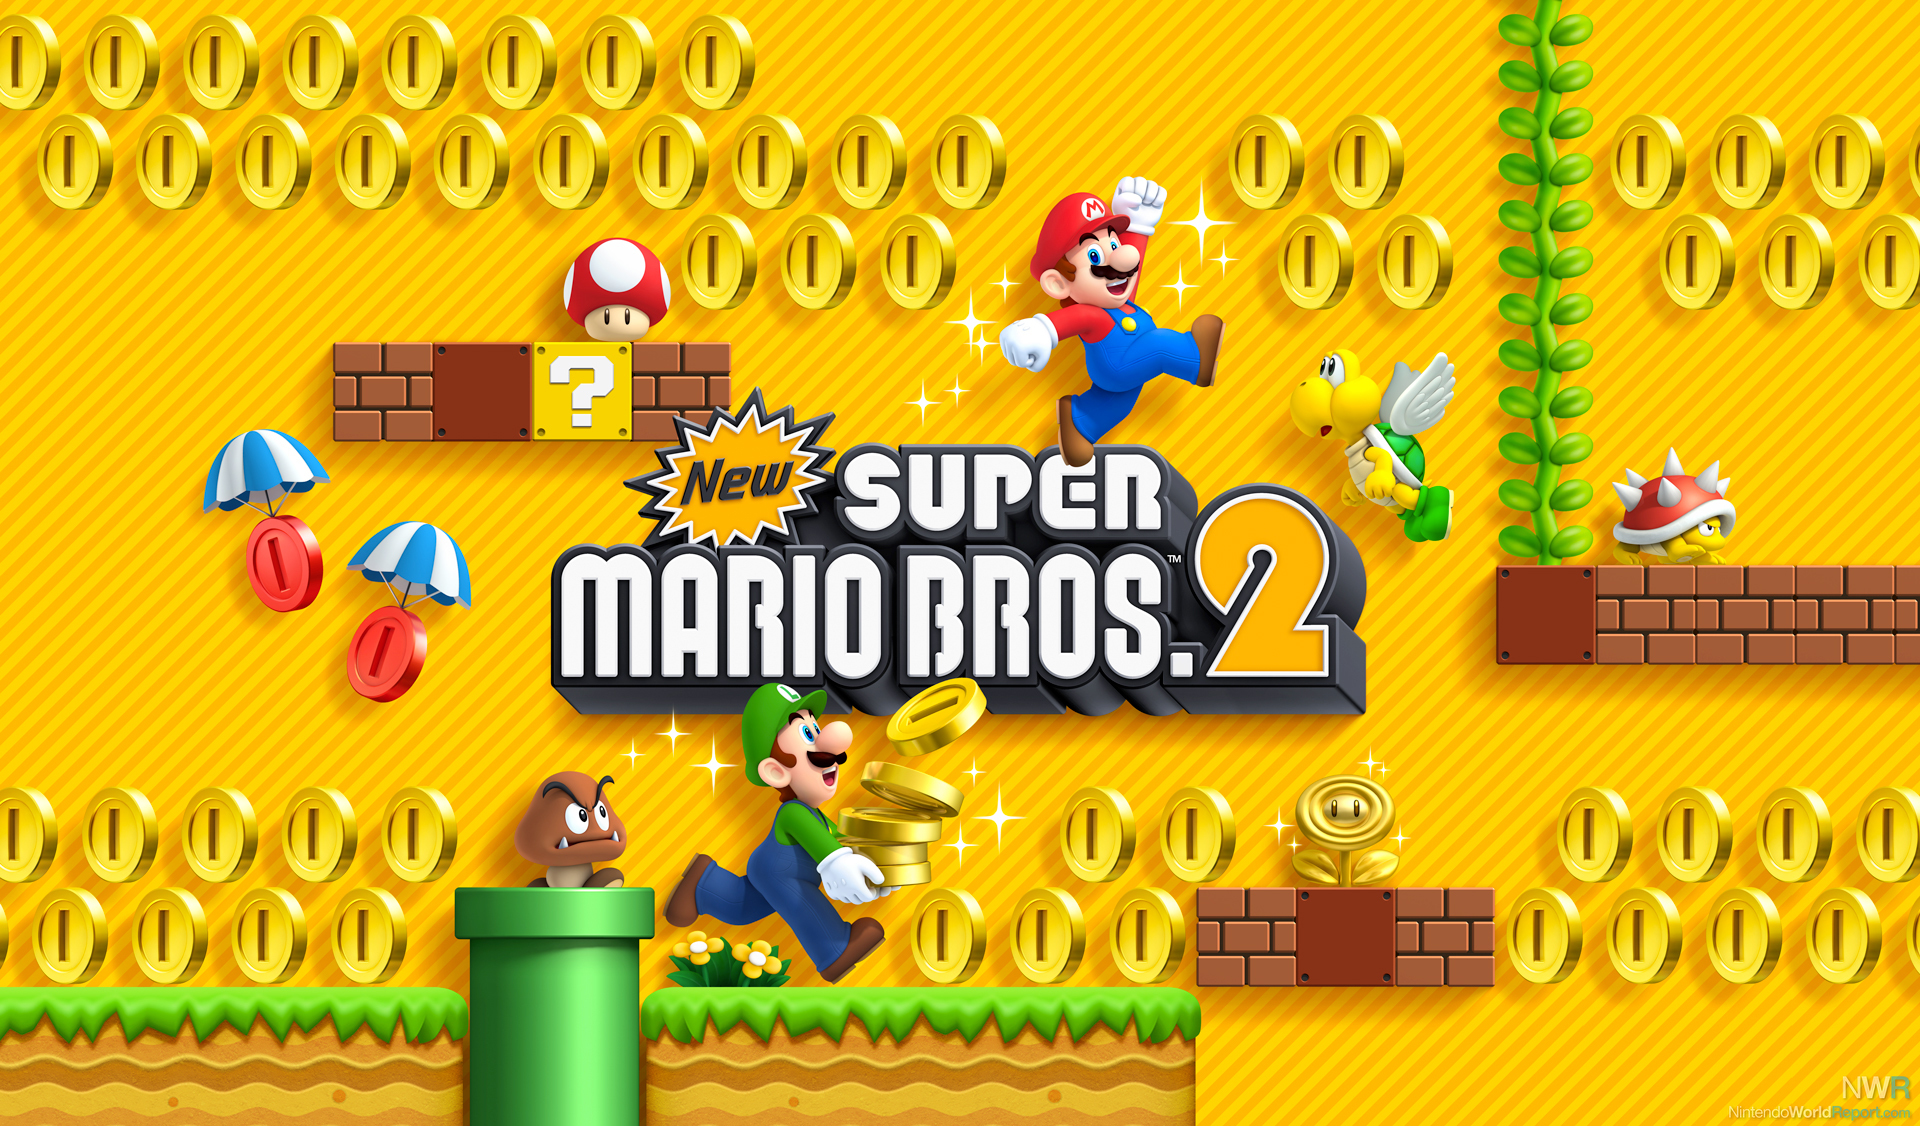 Why New Super Mario Bros  2 Cannot Rest on the Original's Laurels